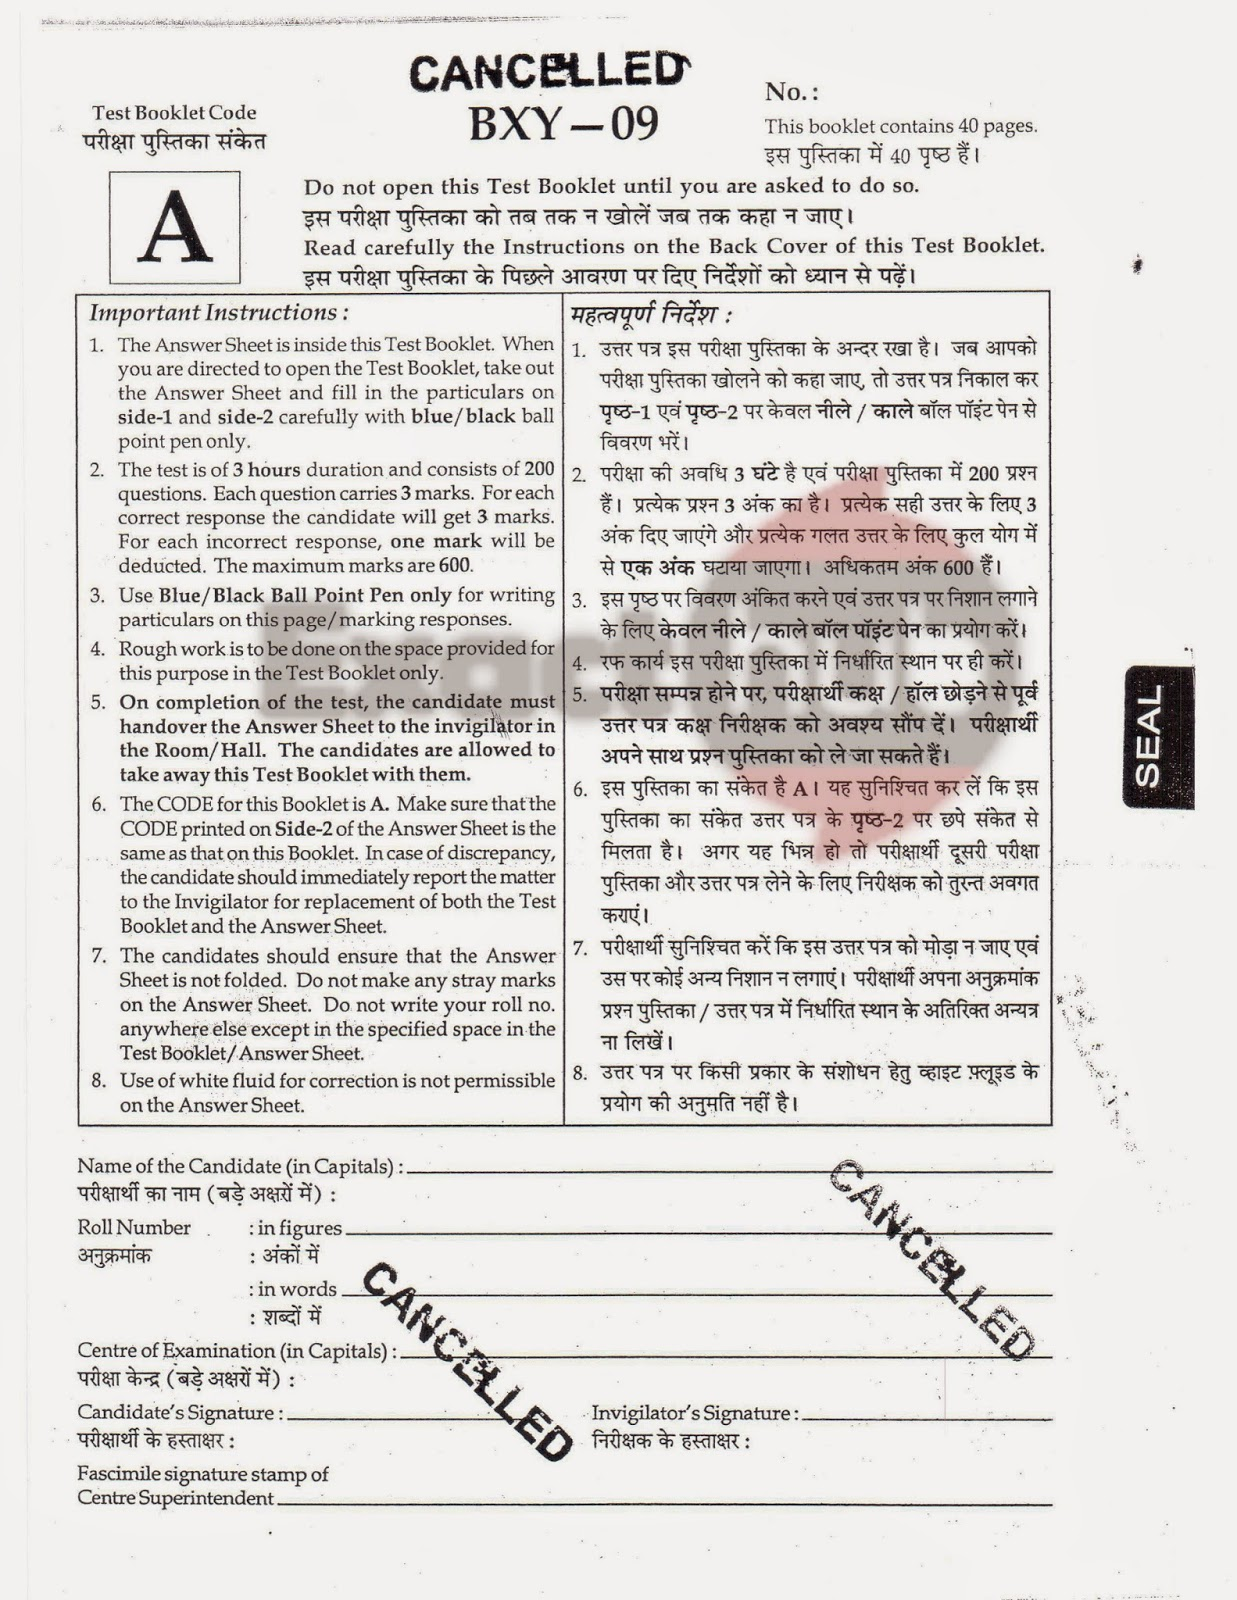 AIPMT 2008 Exam Question Paper Page 01